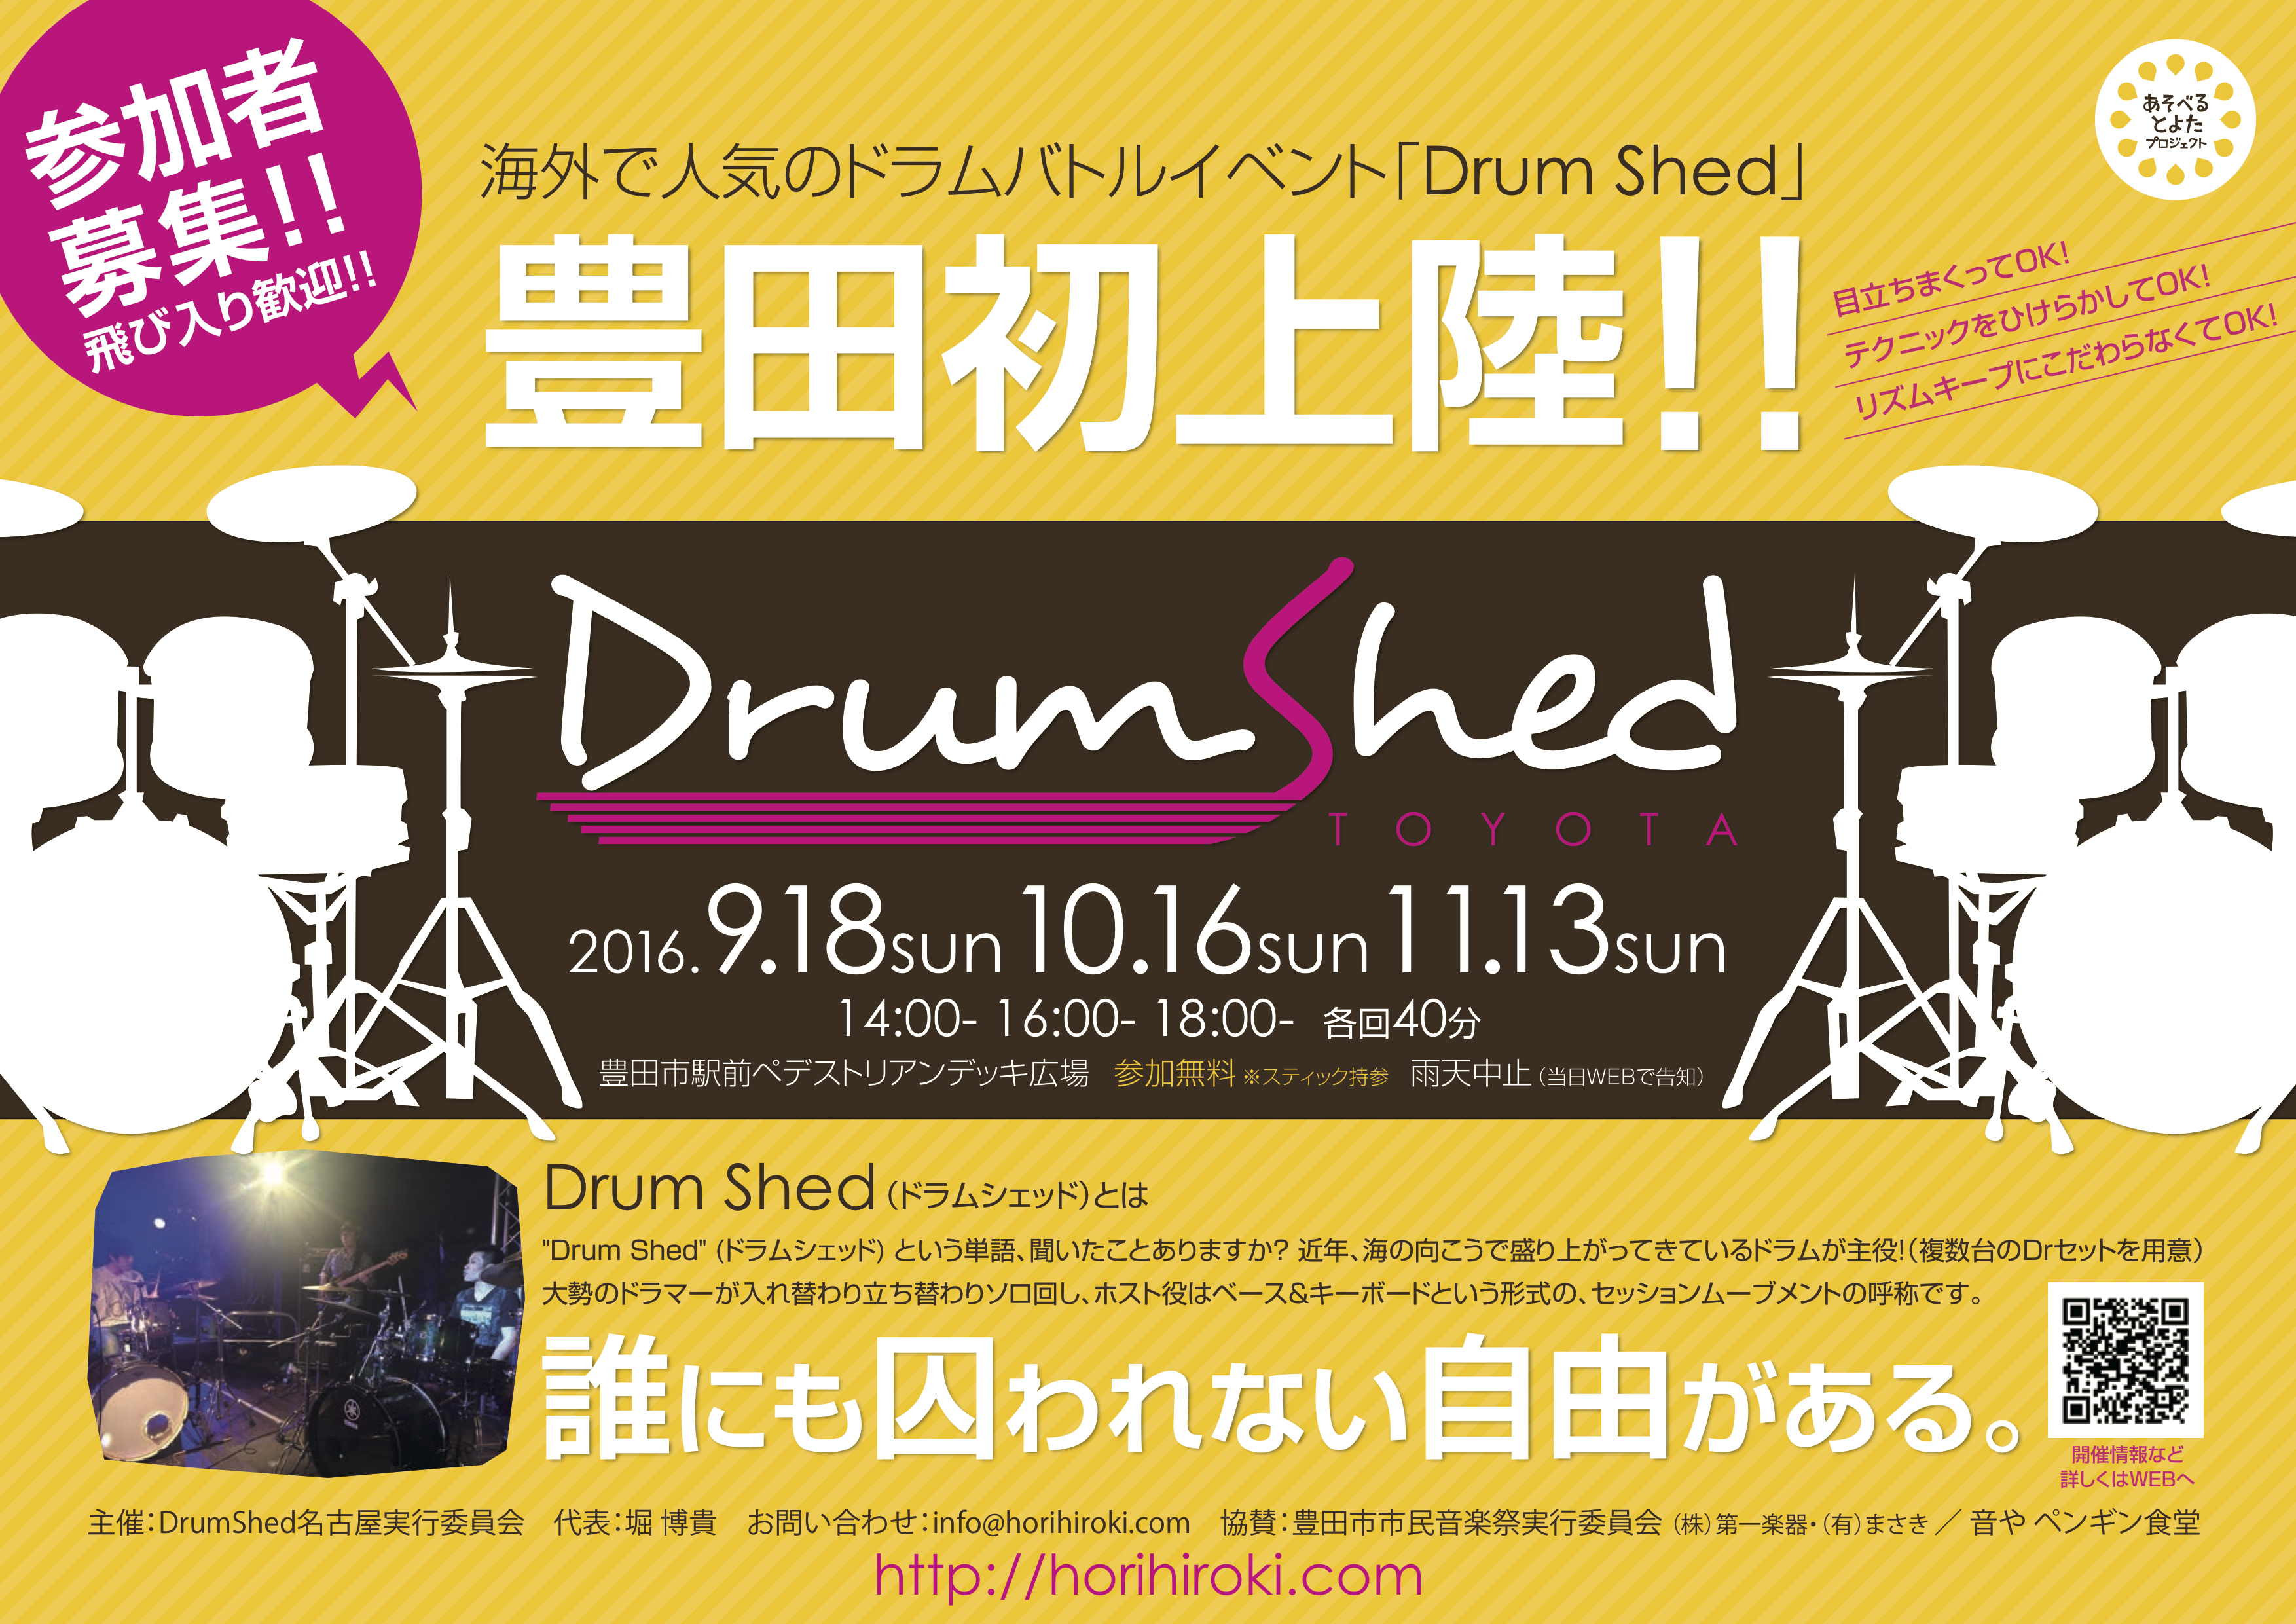 drumshedtoyota